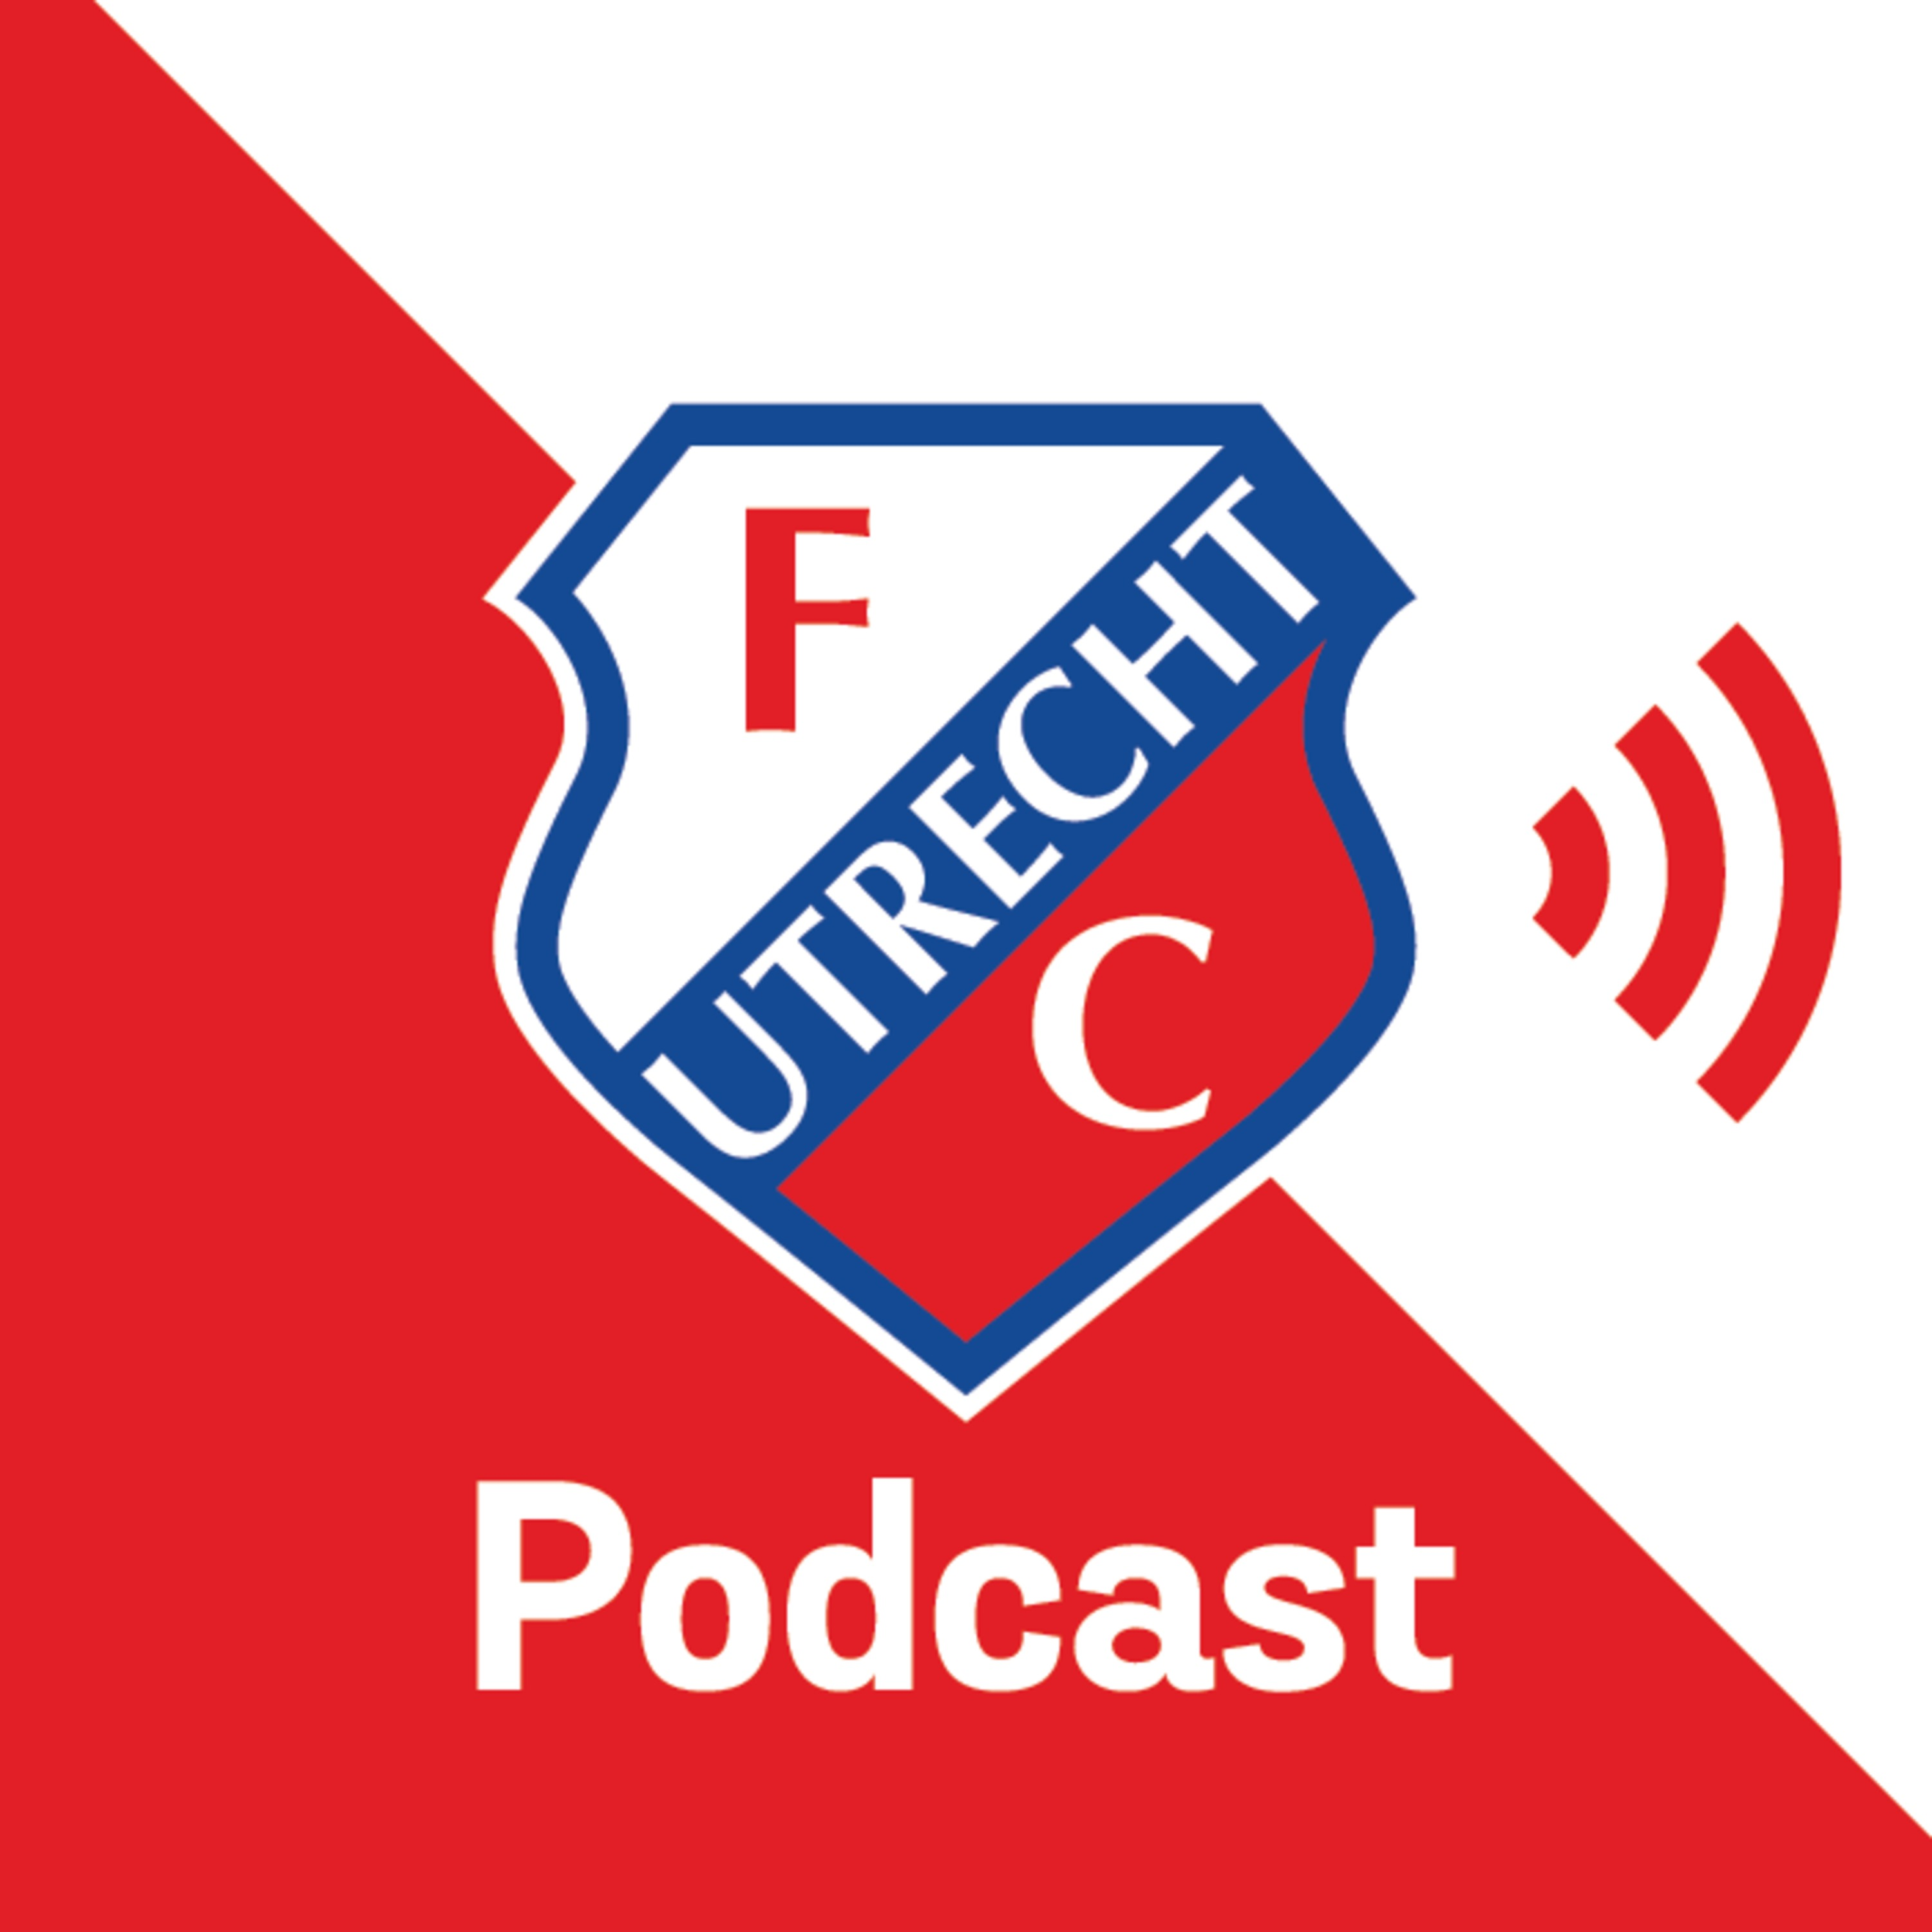 FC Utrecht Matchday Podcast, S01 - E09: Feyenoord-thuis